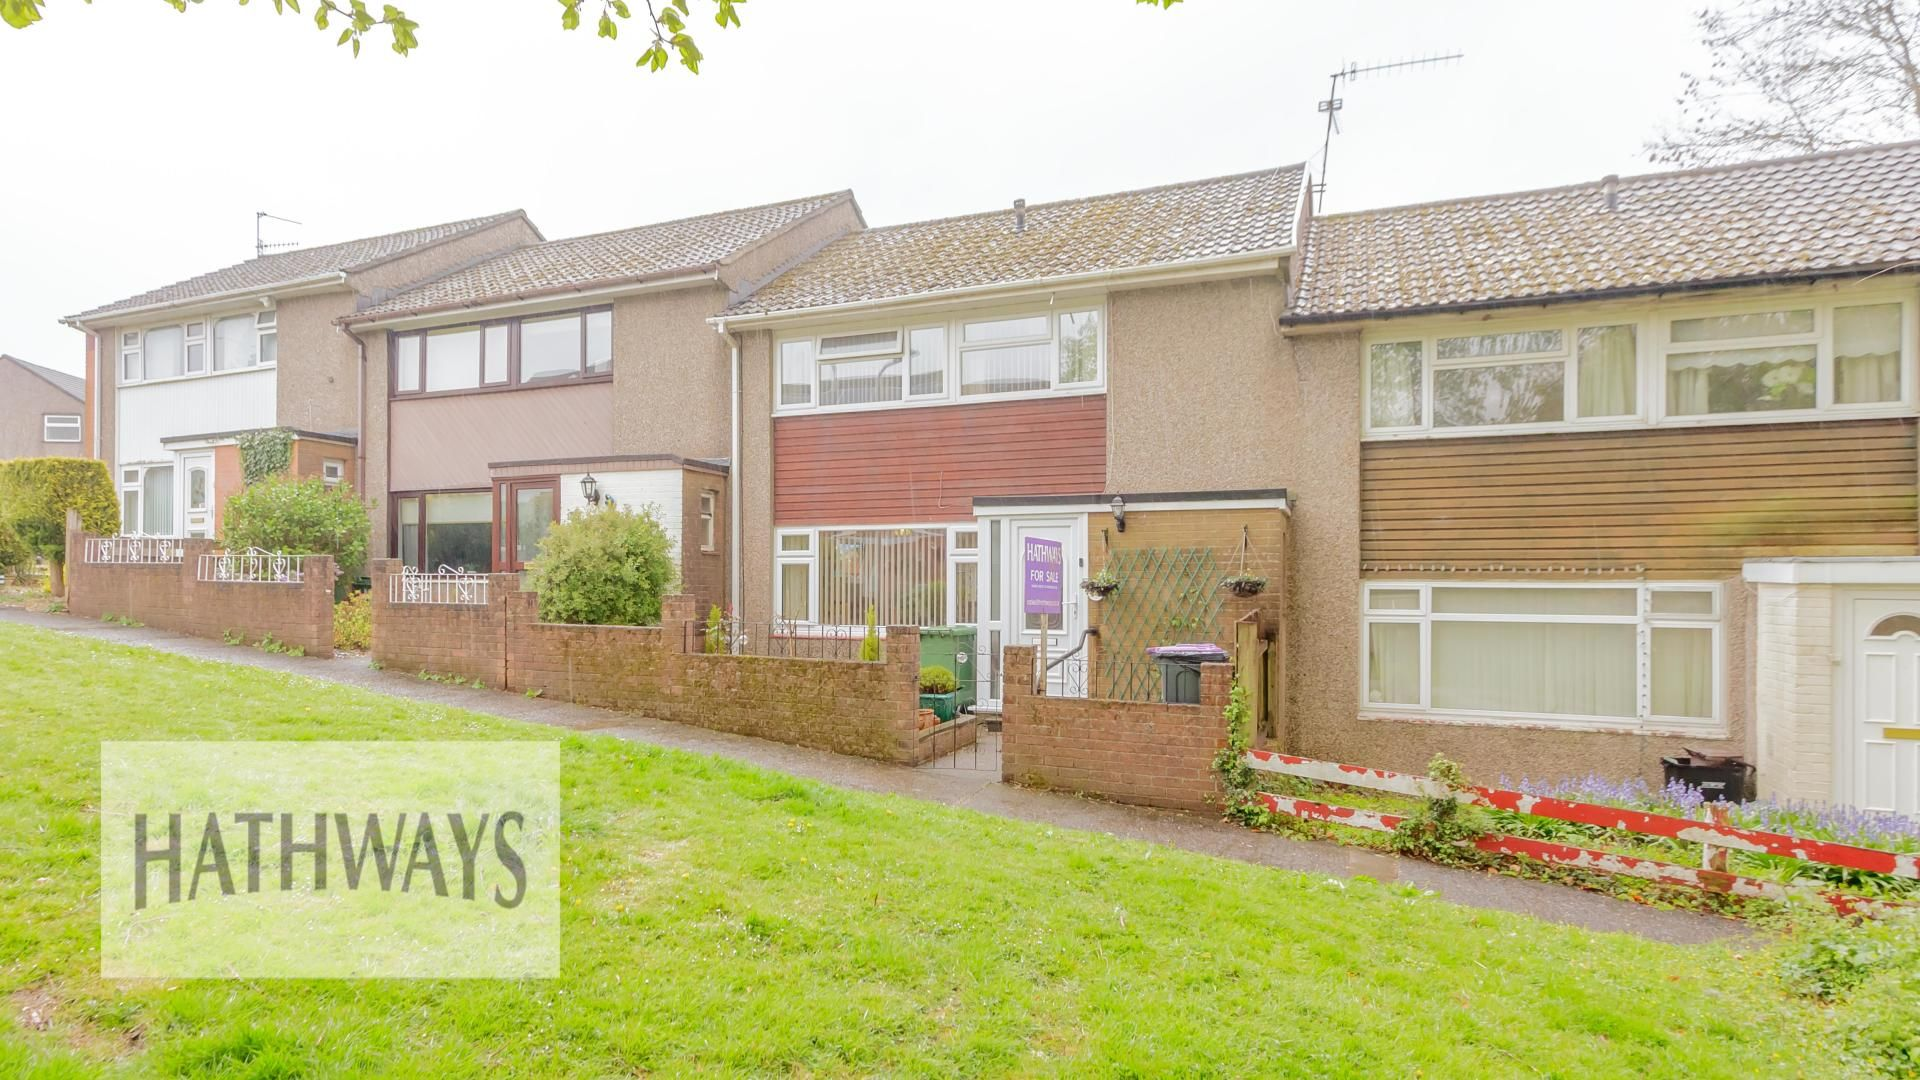 3 bed house for sale in Shakespeare Road, NP44